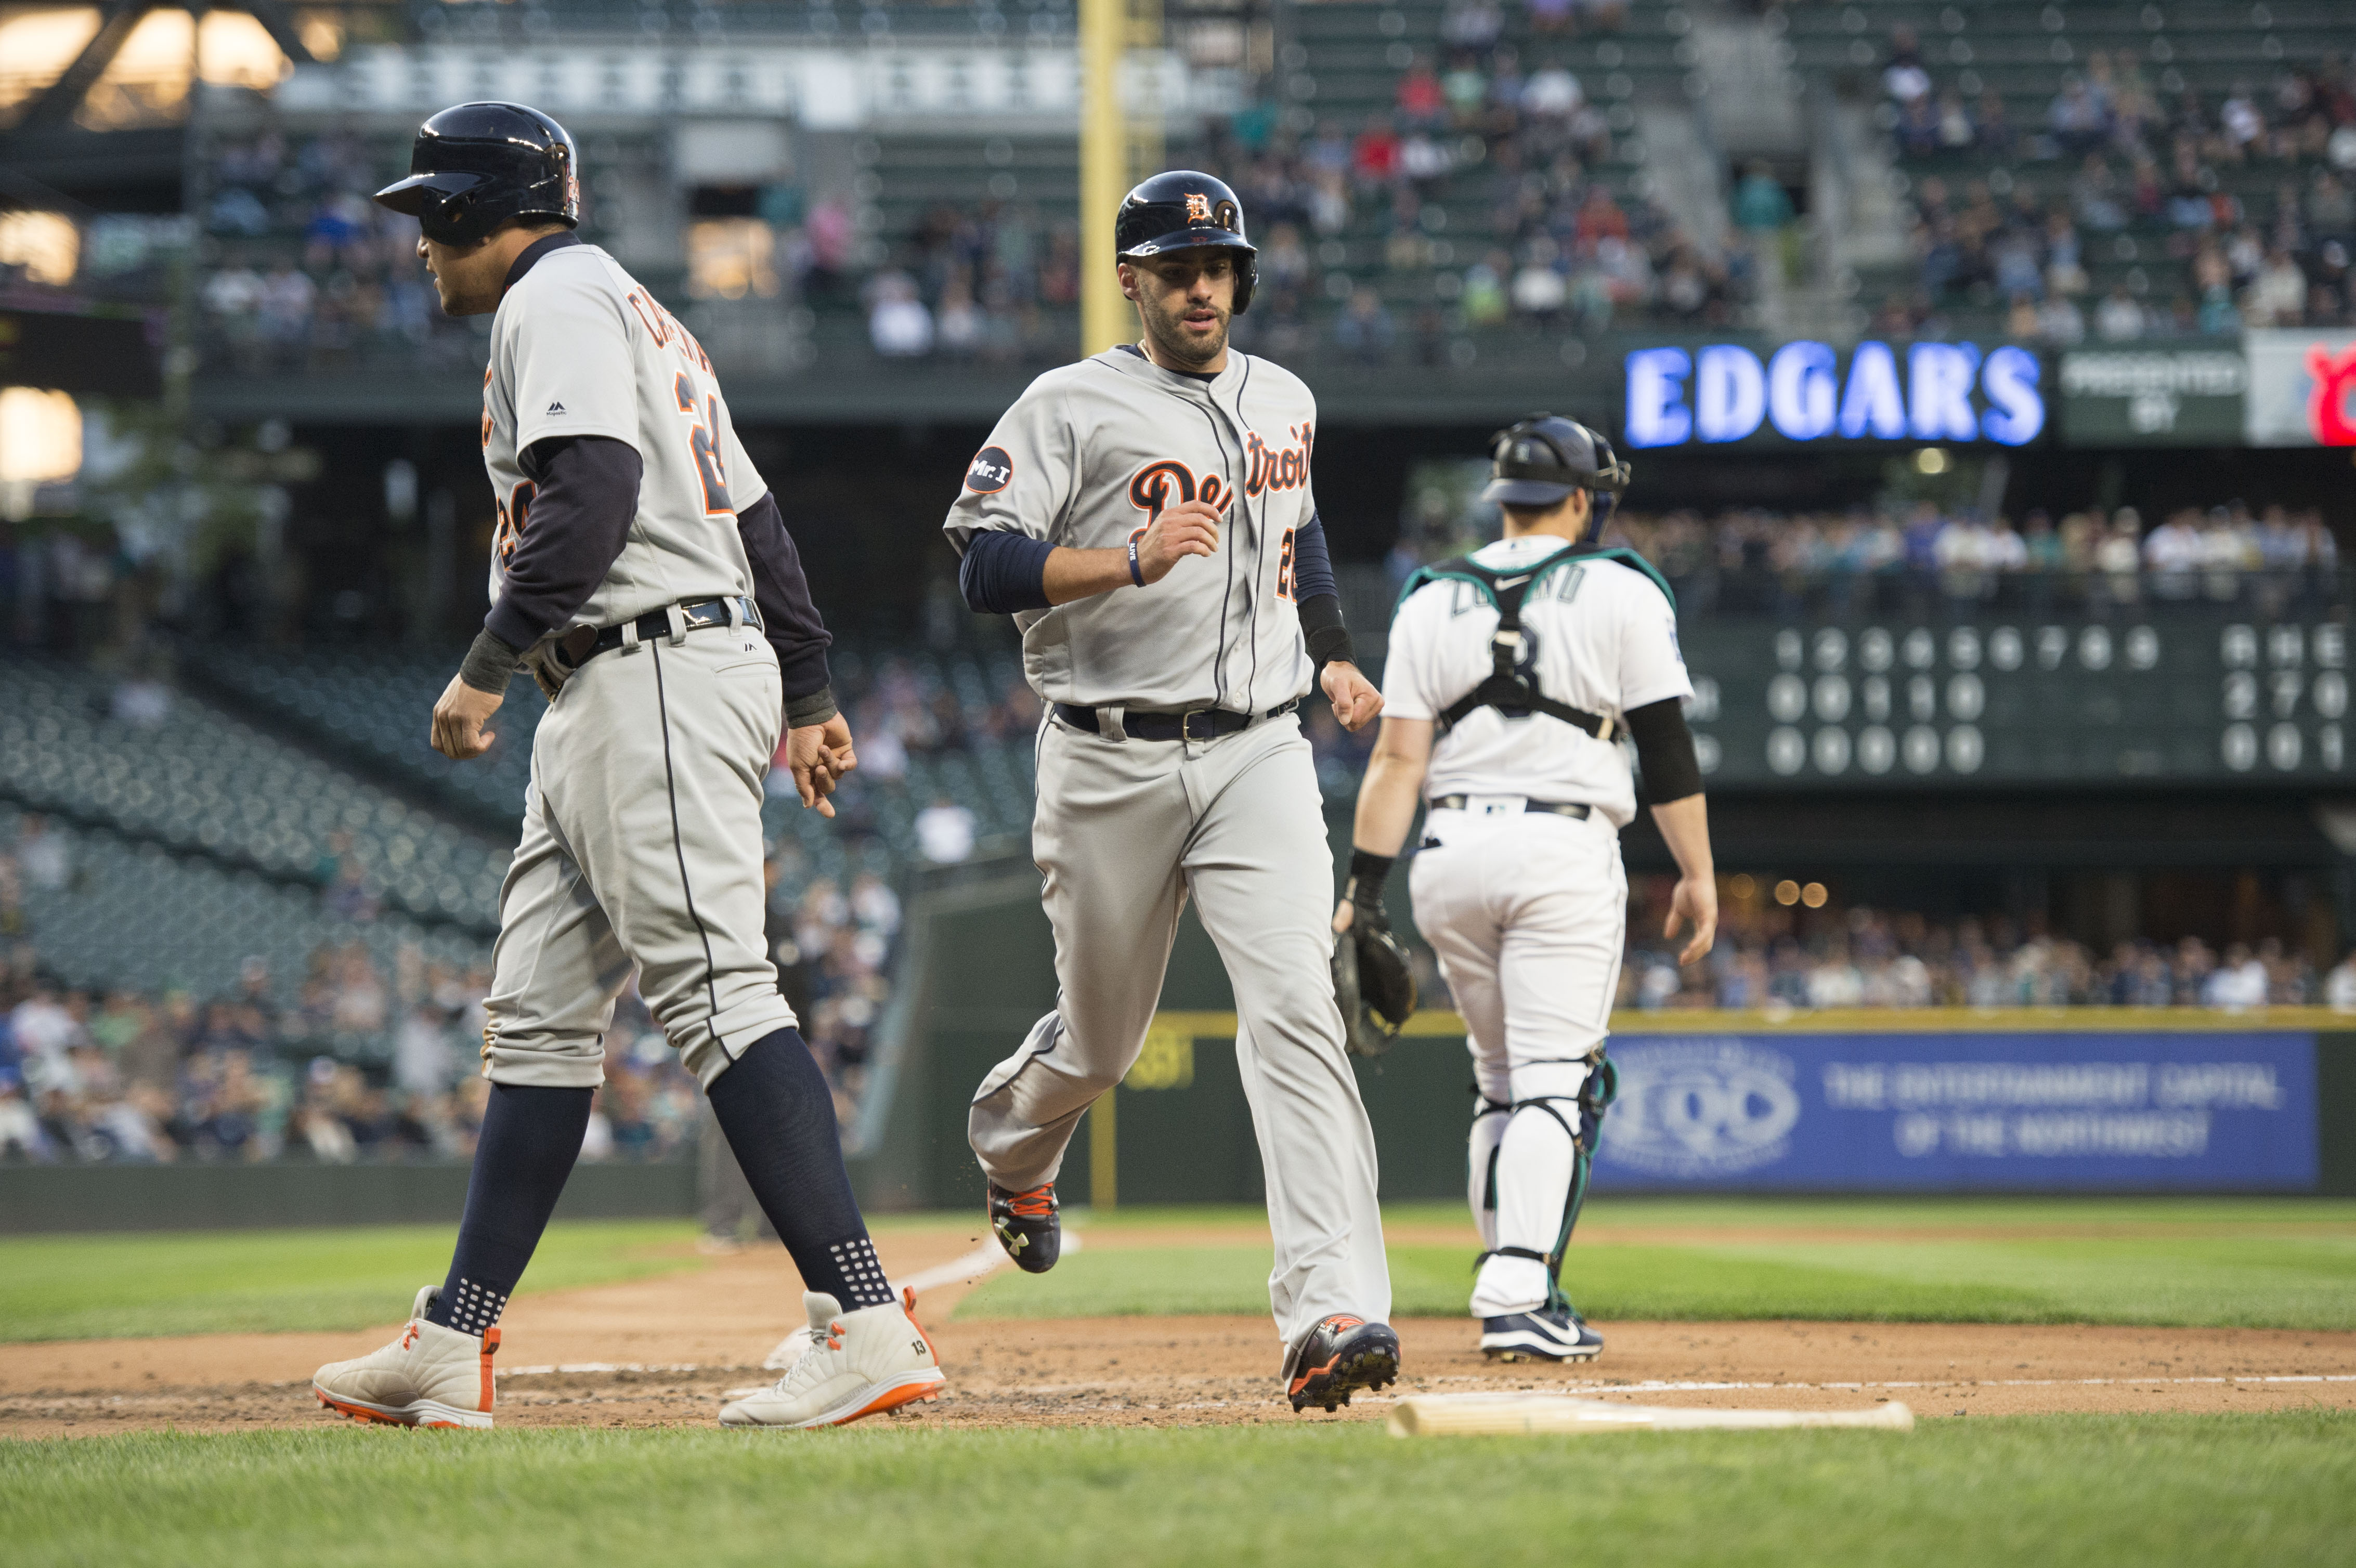 10125907-mlb-detroit-tigers-at-seattle-mariners